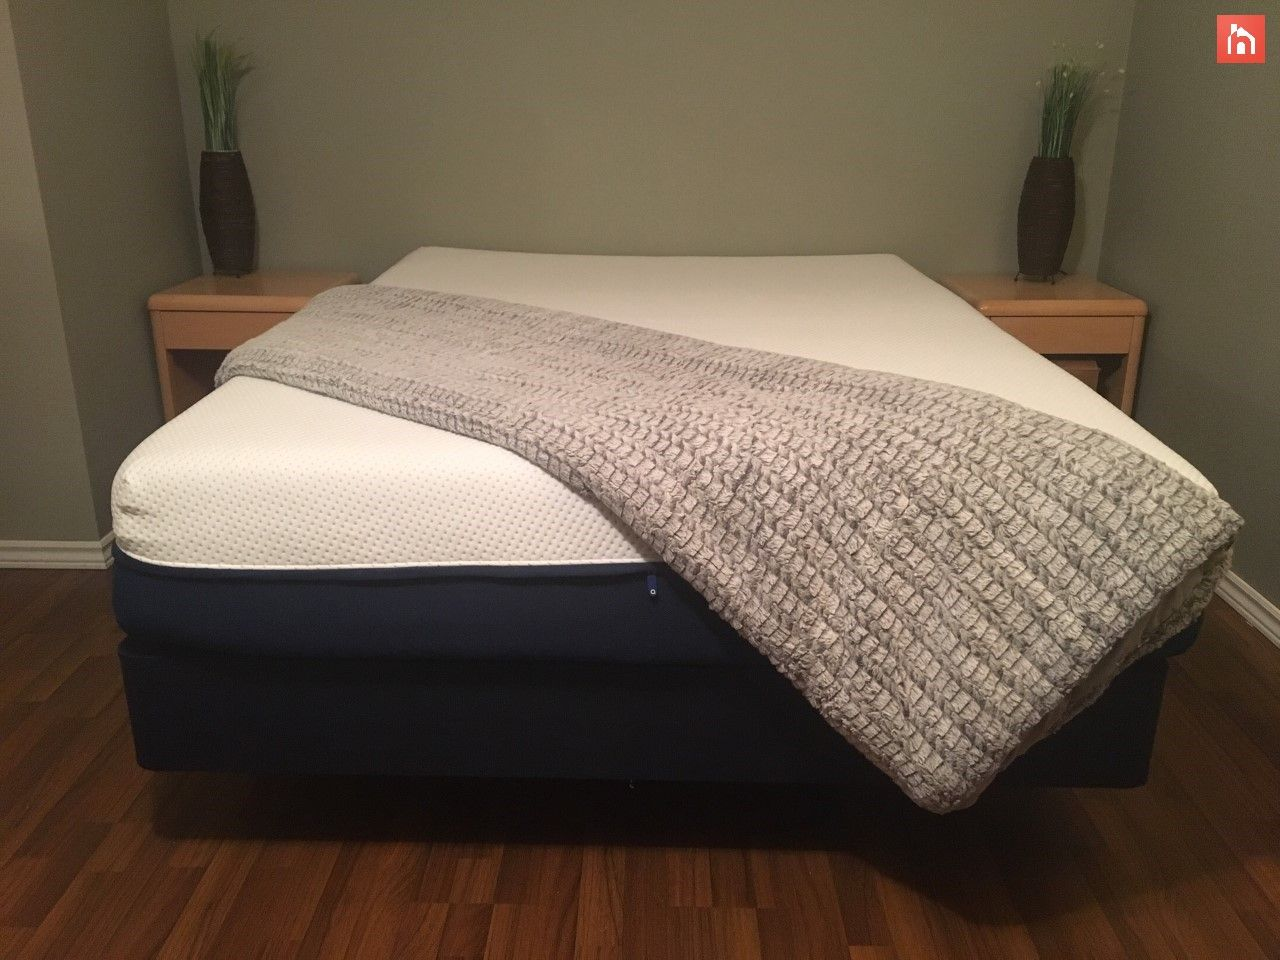 Our Personal Review Of The Amerisleep Mattress In 2020 Mattress